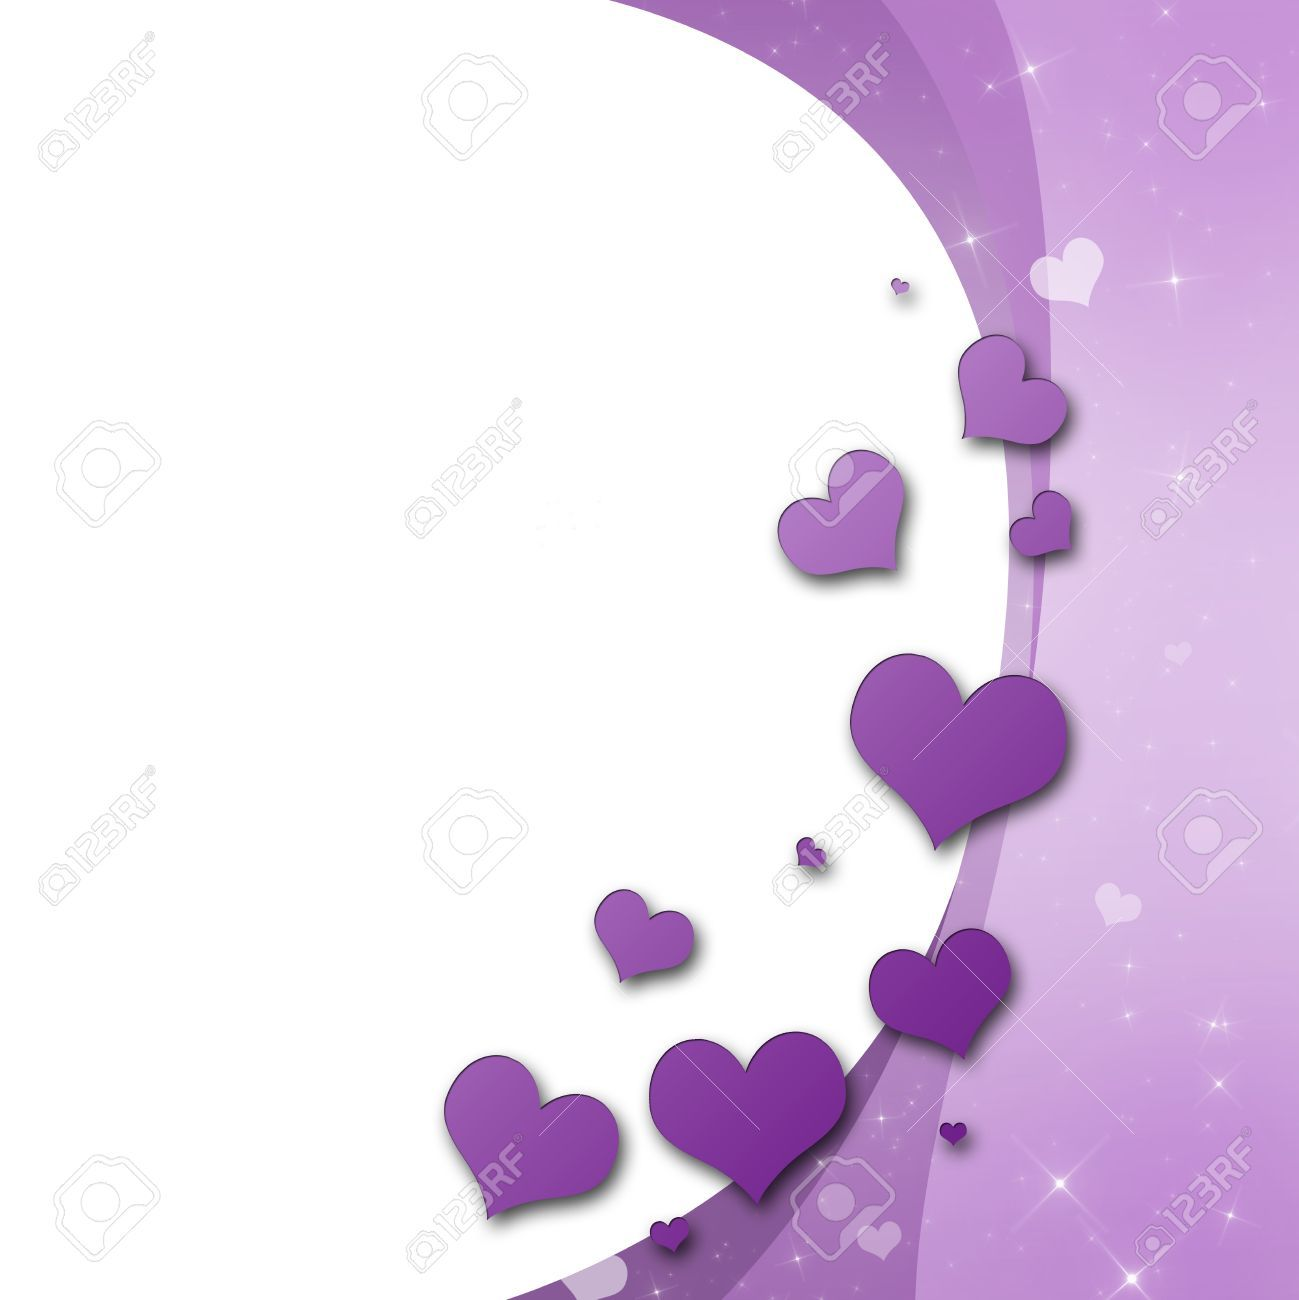 purple wedding background images wwwimgkidcom the